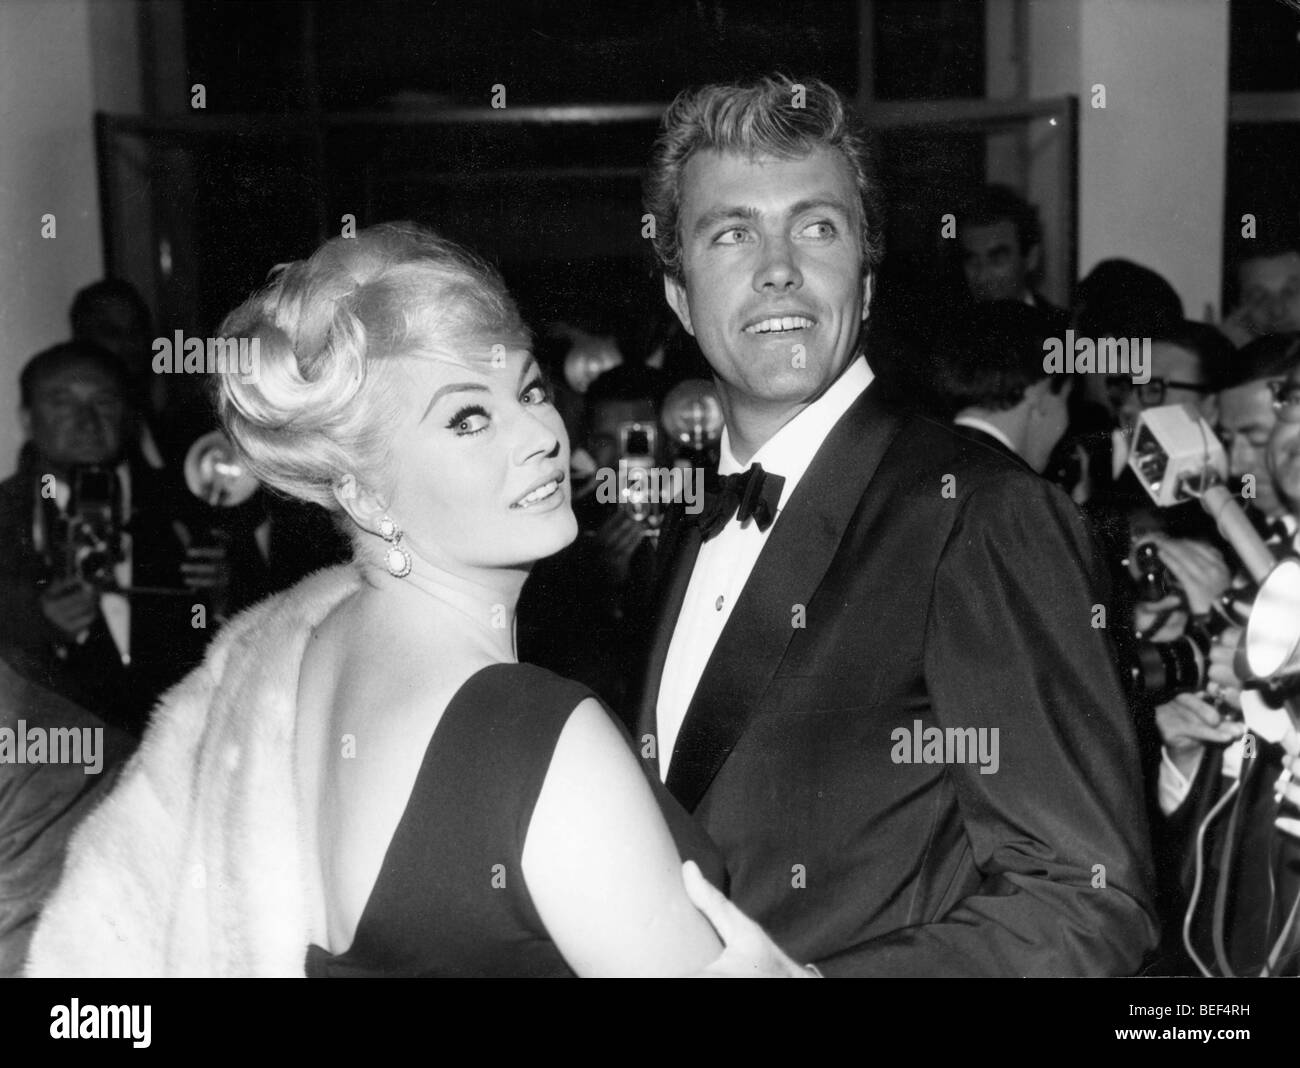 Swedish actress Anita Ekberg and her husband, American actor Rik Van Nutter in 1963. Stock Photo